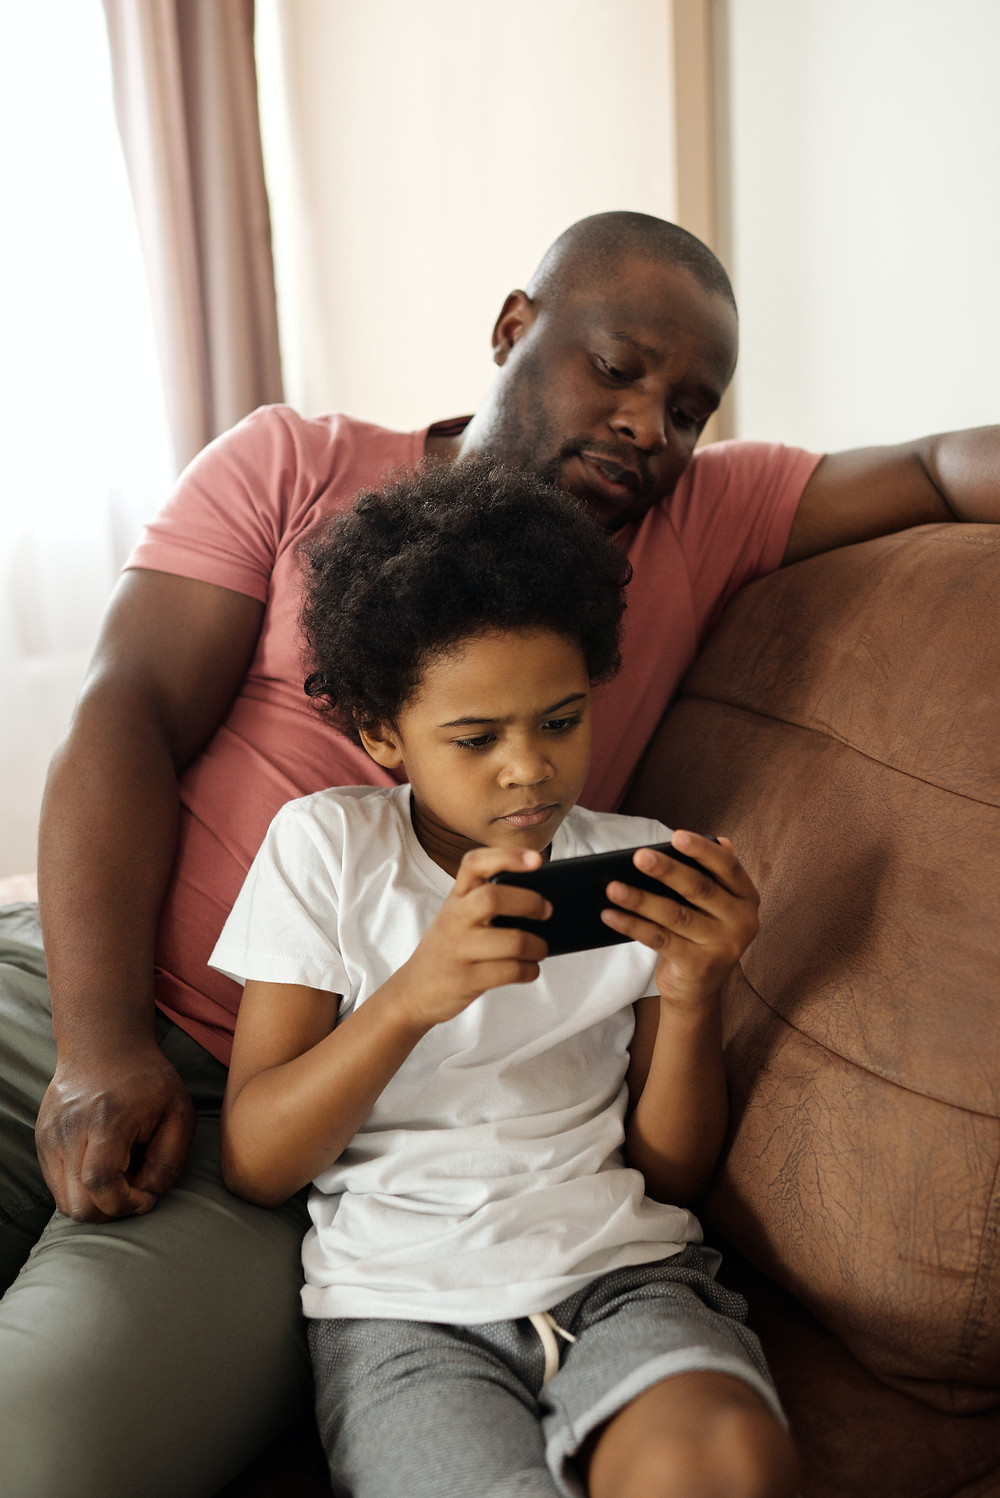 A parent watches a child play a handheld video game while they both sit on a coach.